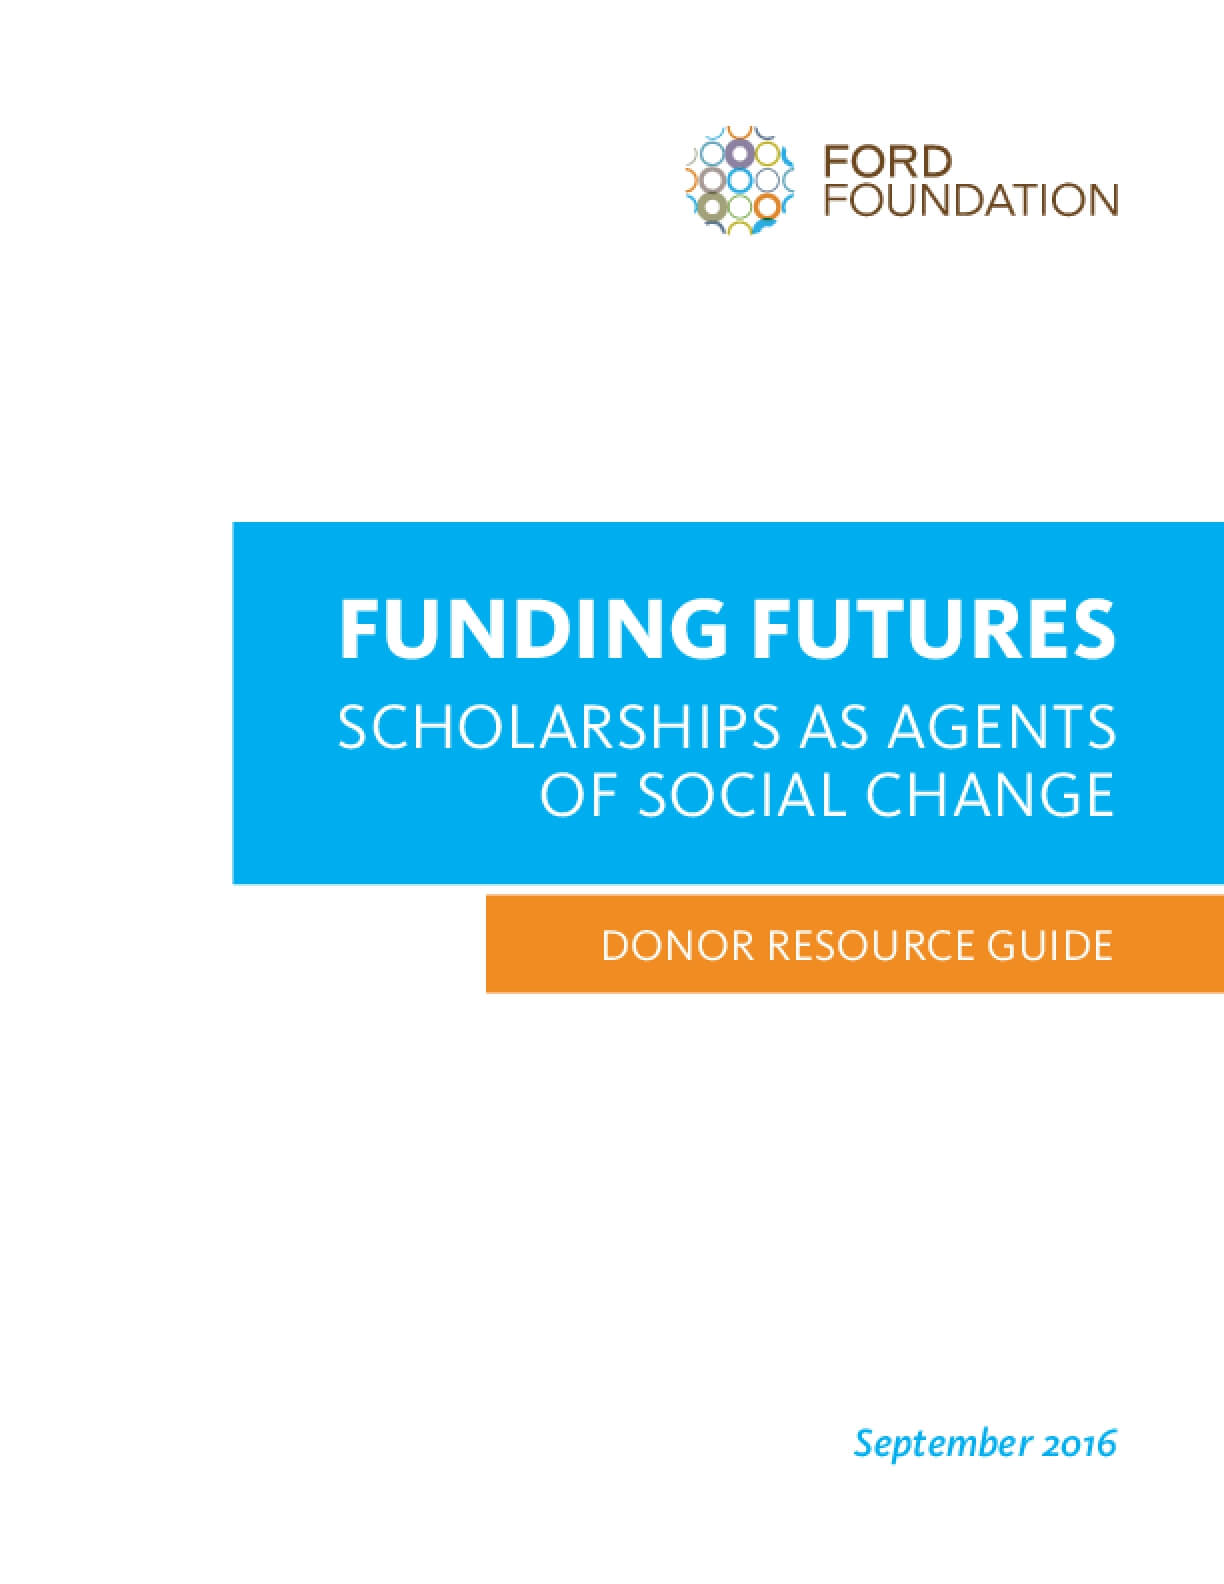 Funding Futures: Scholarships as Agents of Social Change - Donor Resource Guide